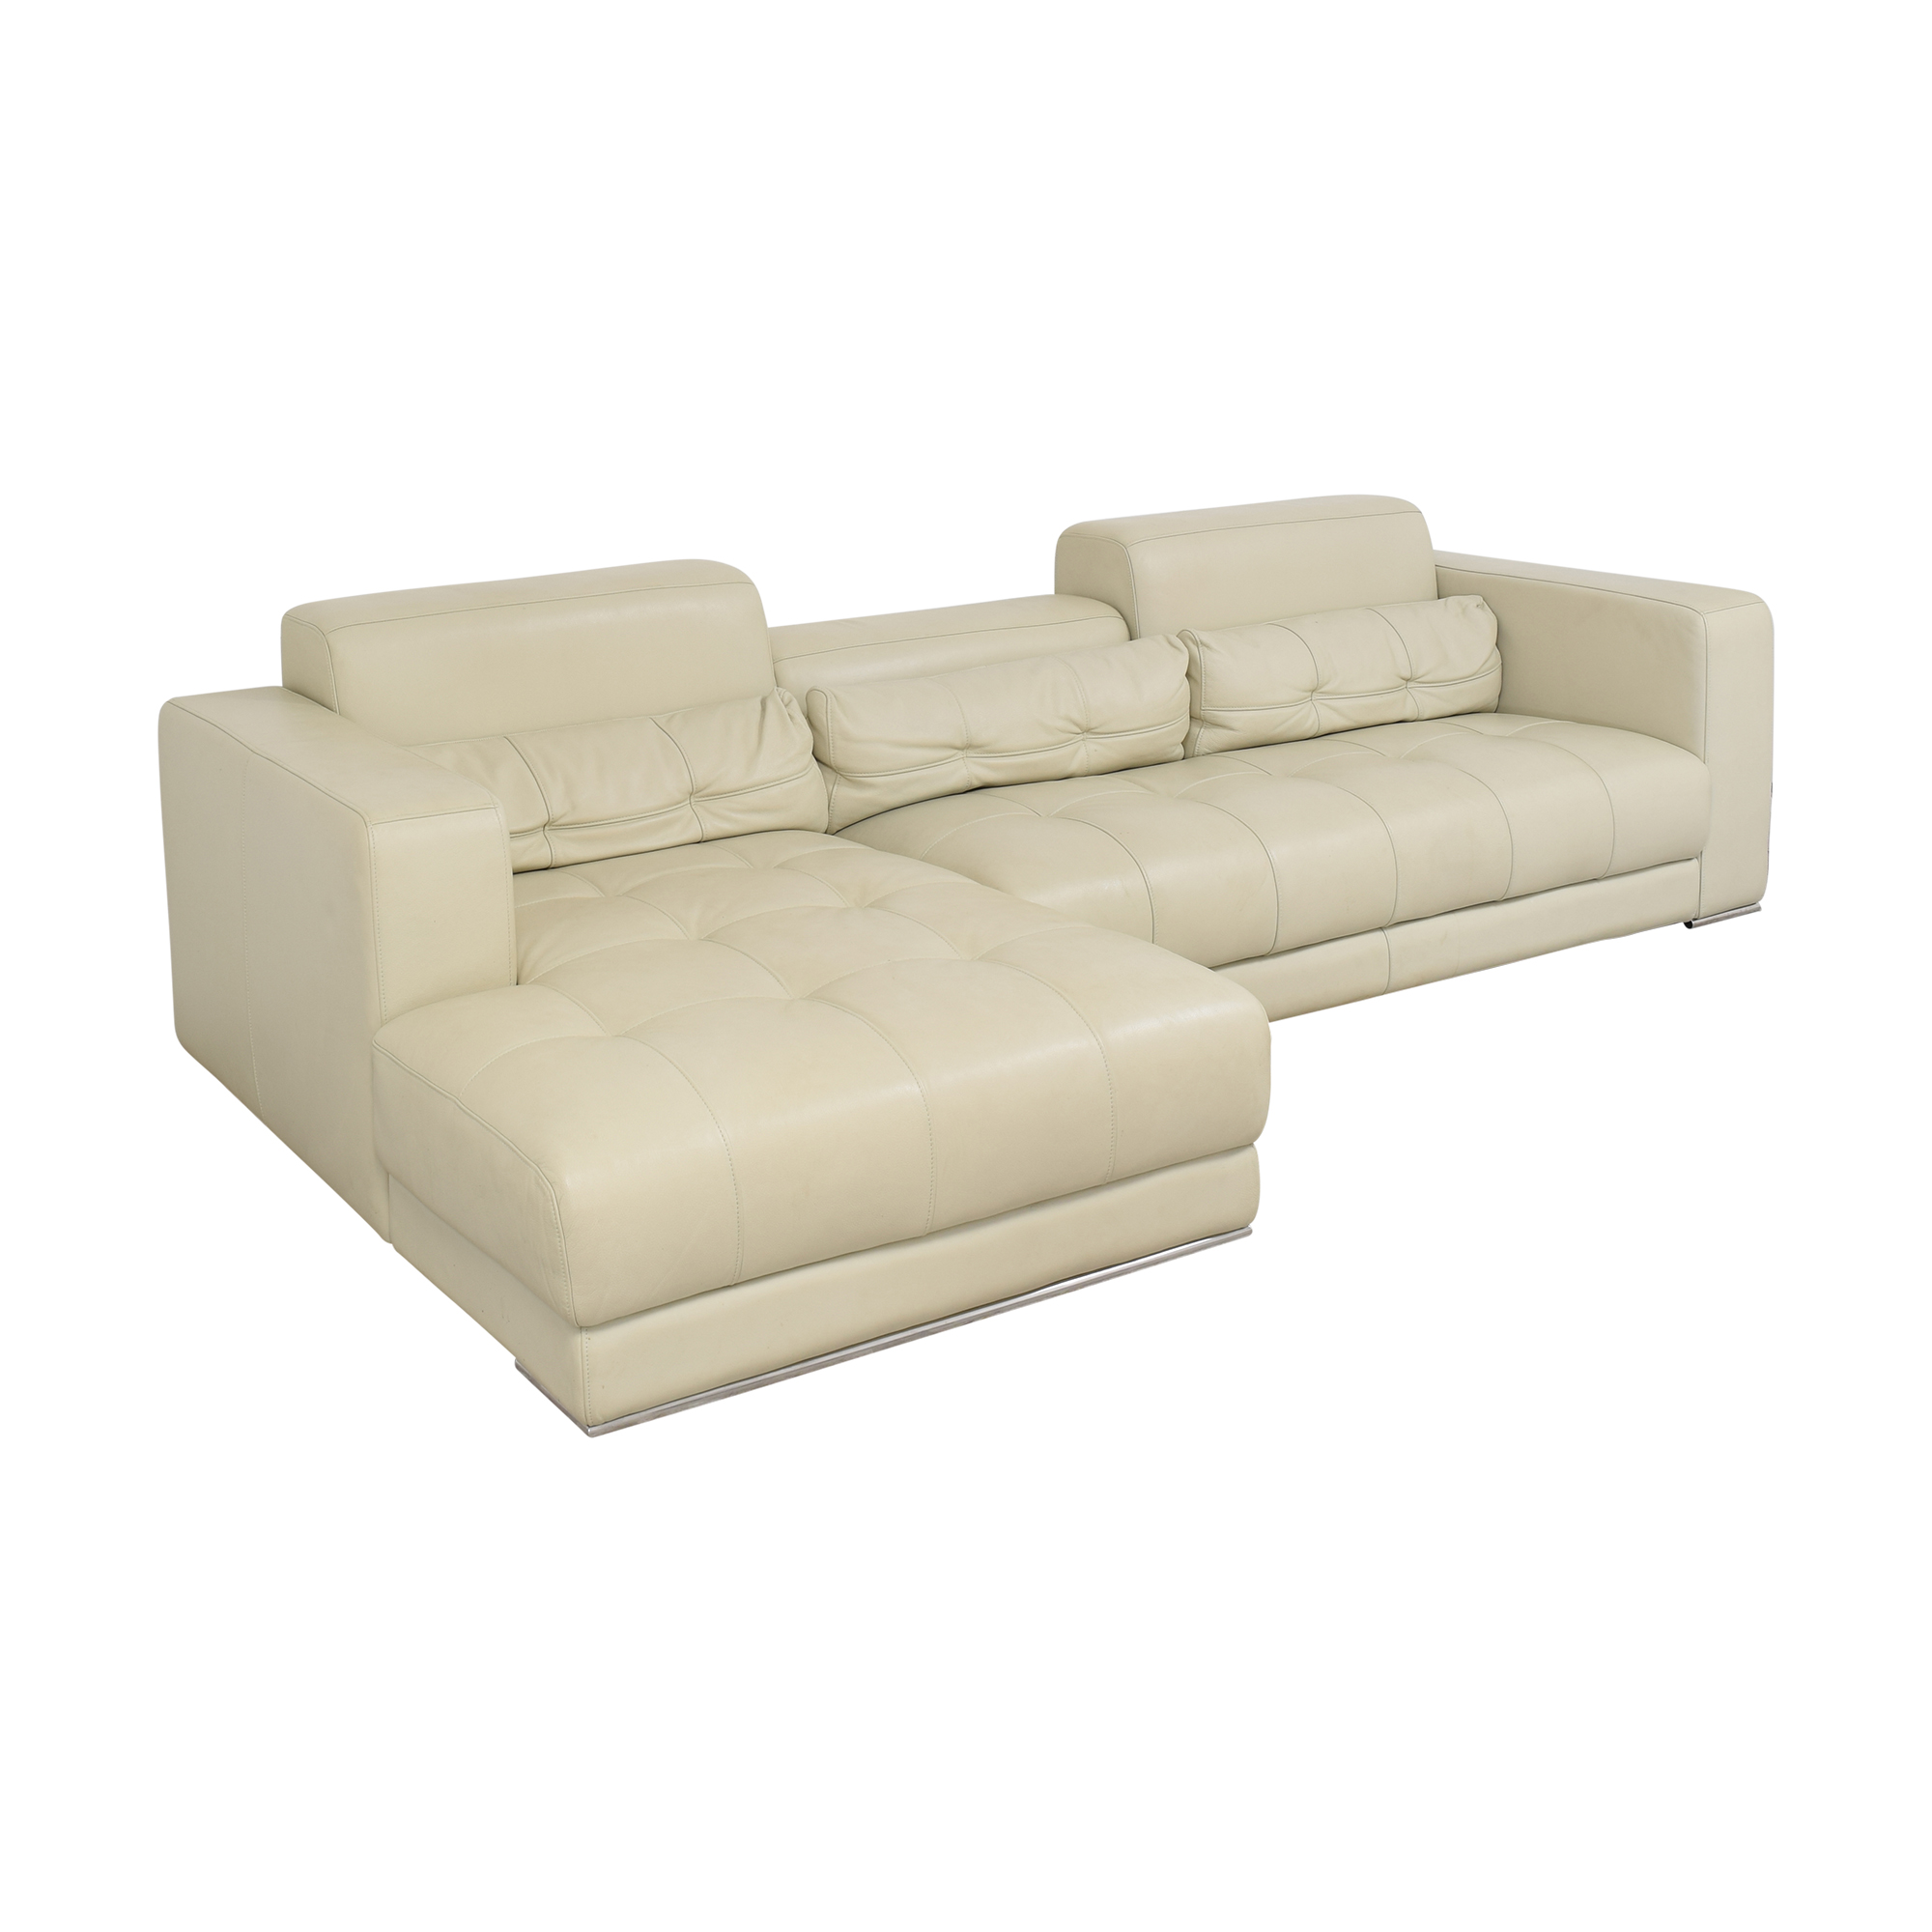 Maurice Villency Maurice Villency Chaise Sectional Sofa pa